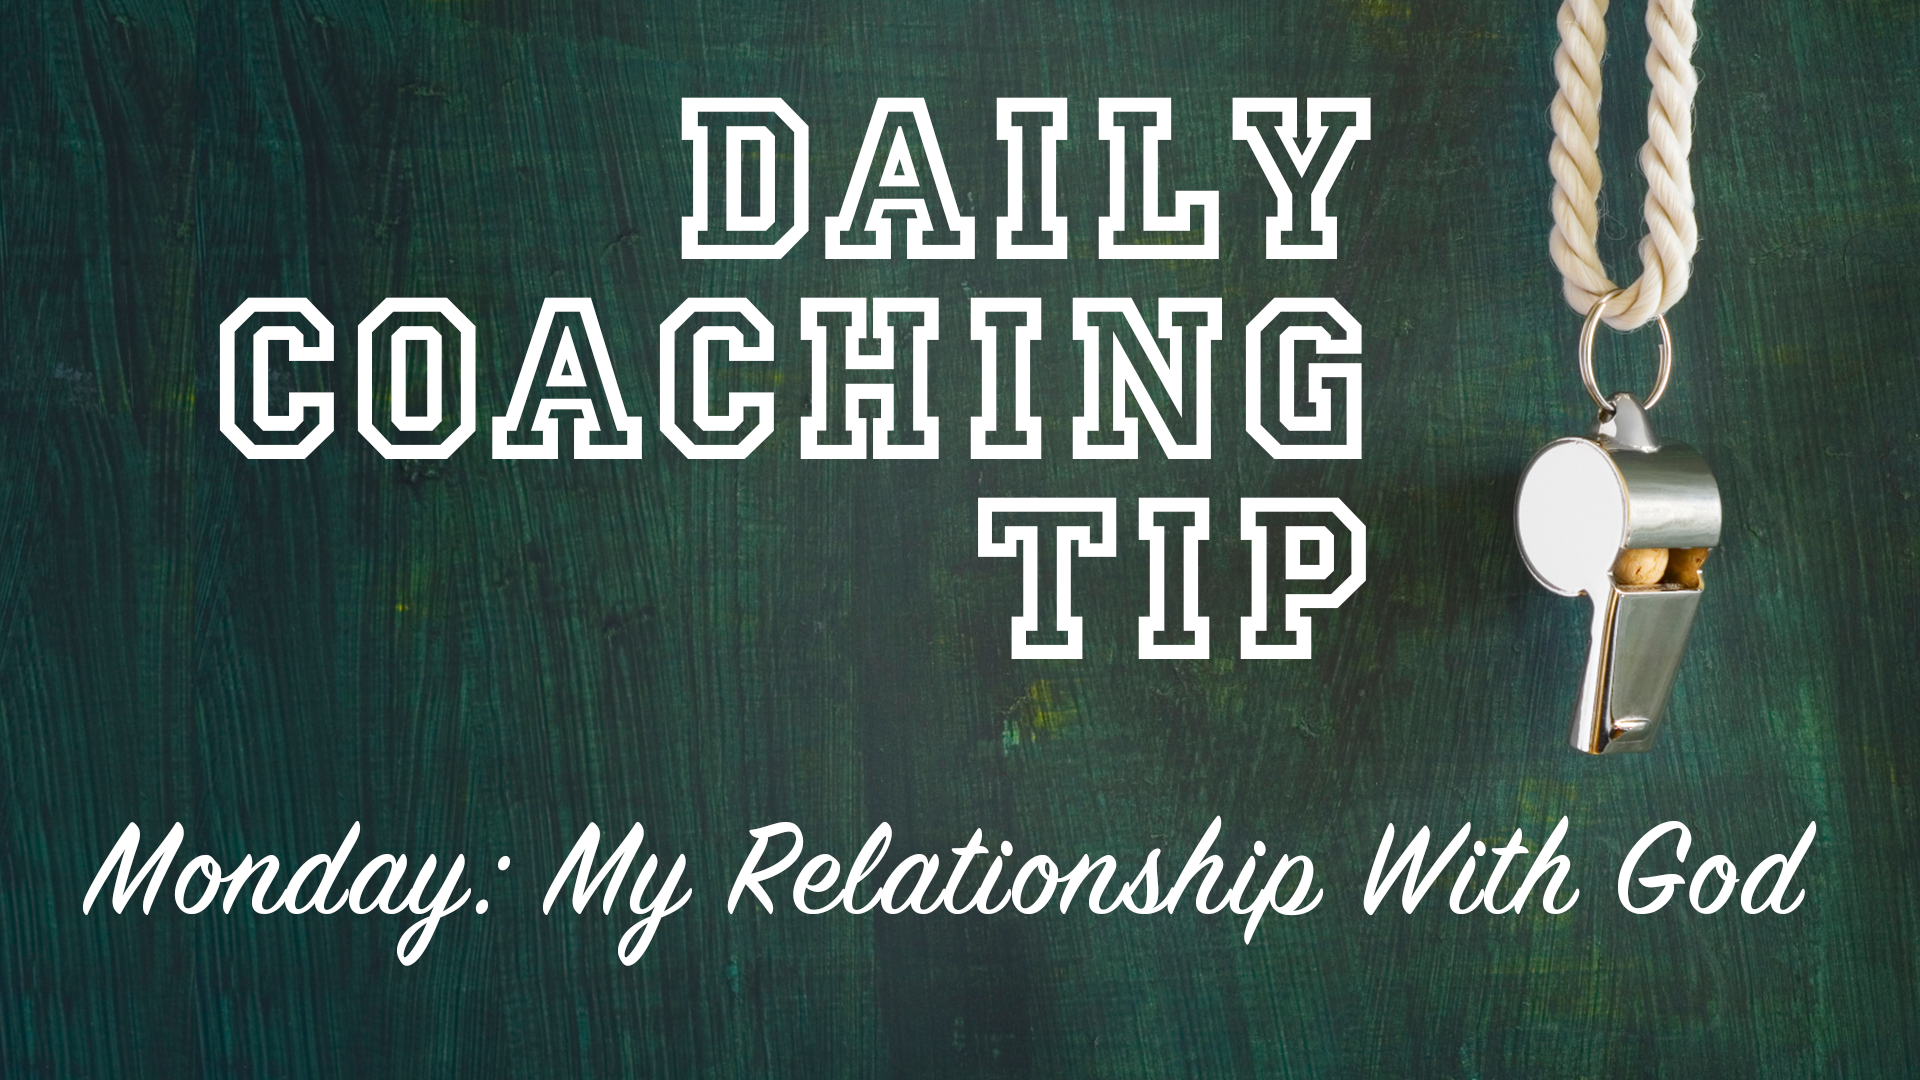 Daily Coaching Tip, Monday, May 23, 2016